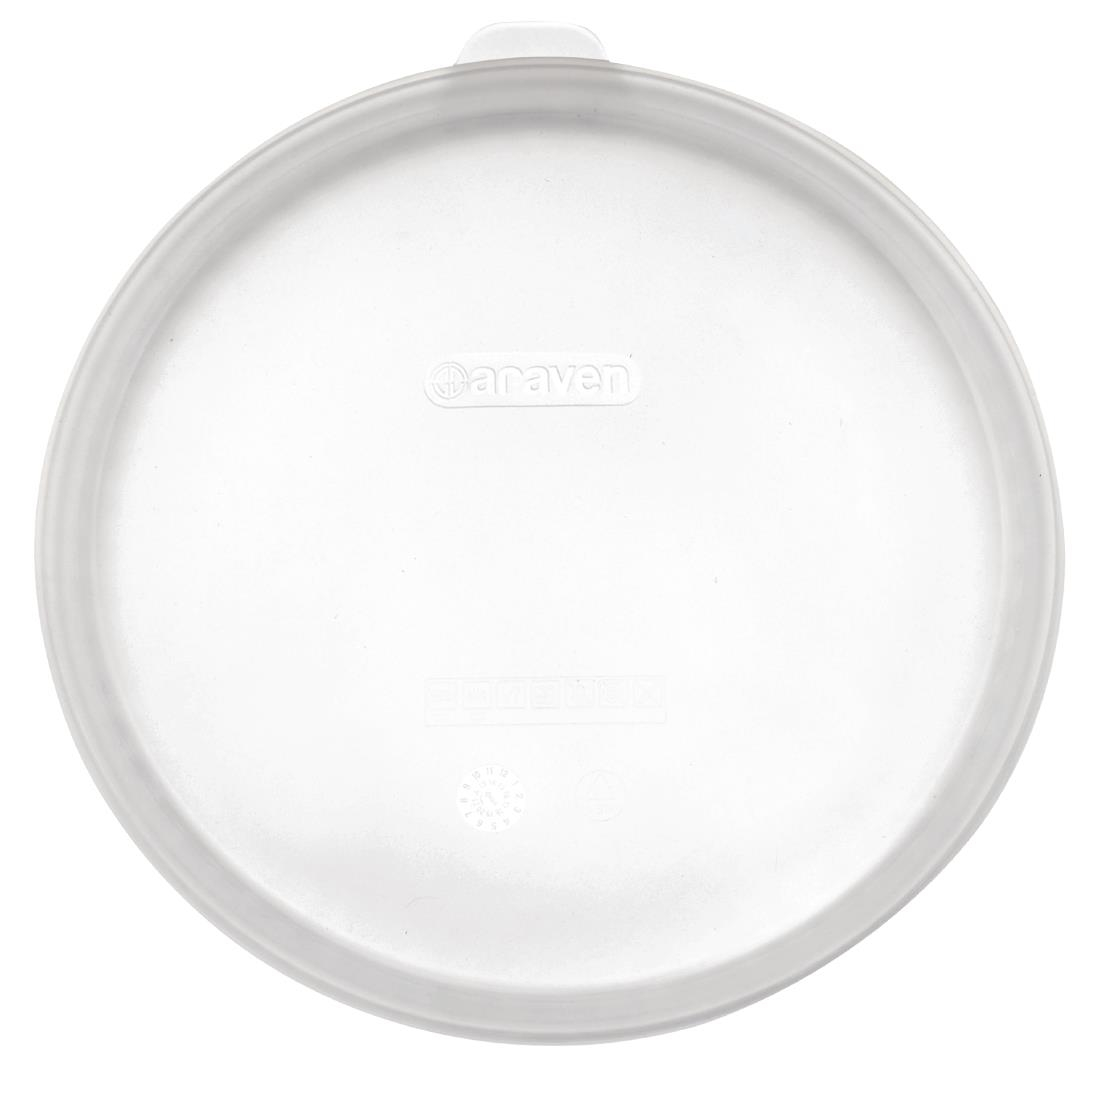 Image of Araven Round Silicone Lid Clear 133mm